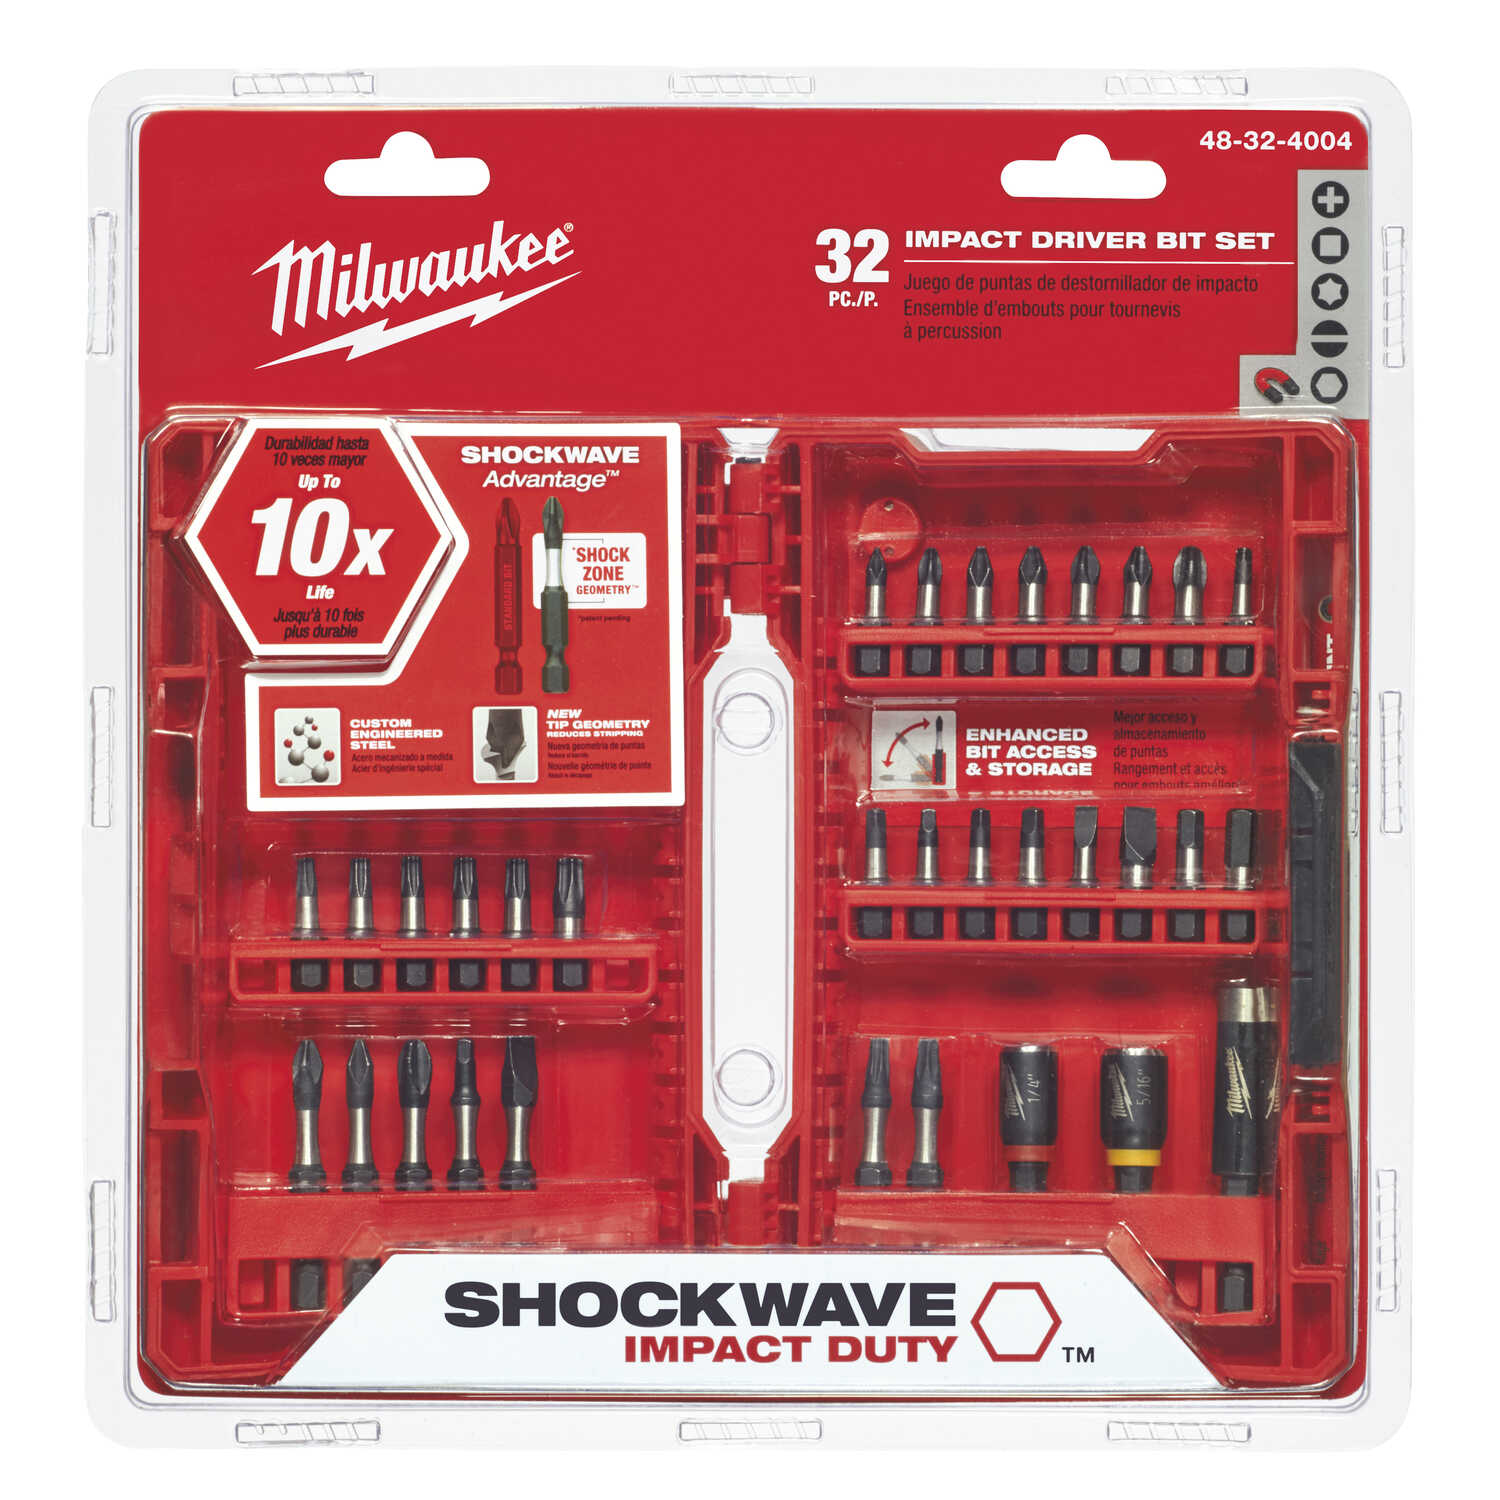 Milwaukee  SHOCKWAVE  Assorted  Impact Duty  Screwdriver Bit Set  Steel  1/4 in. Hex Shank  32 pc.